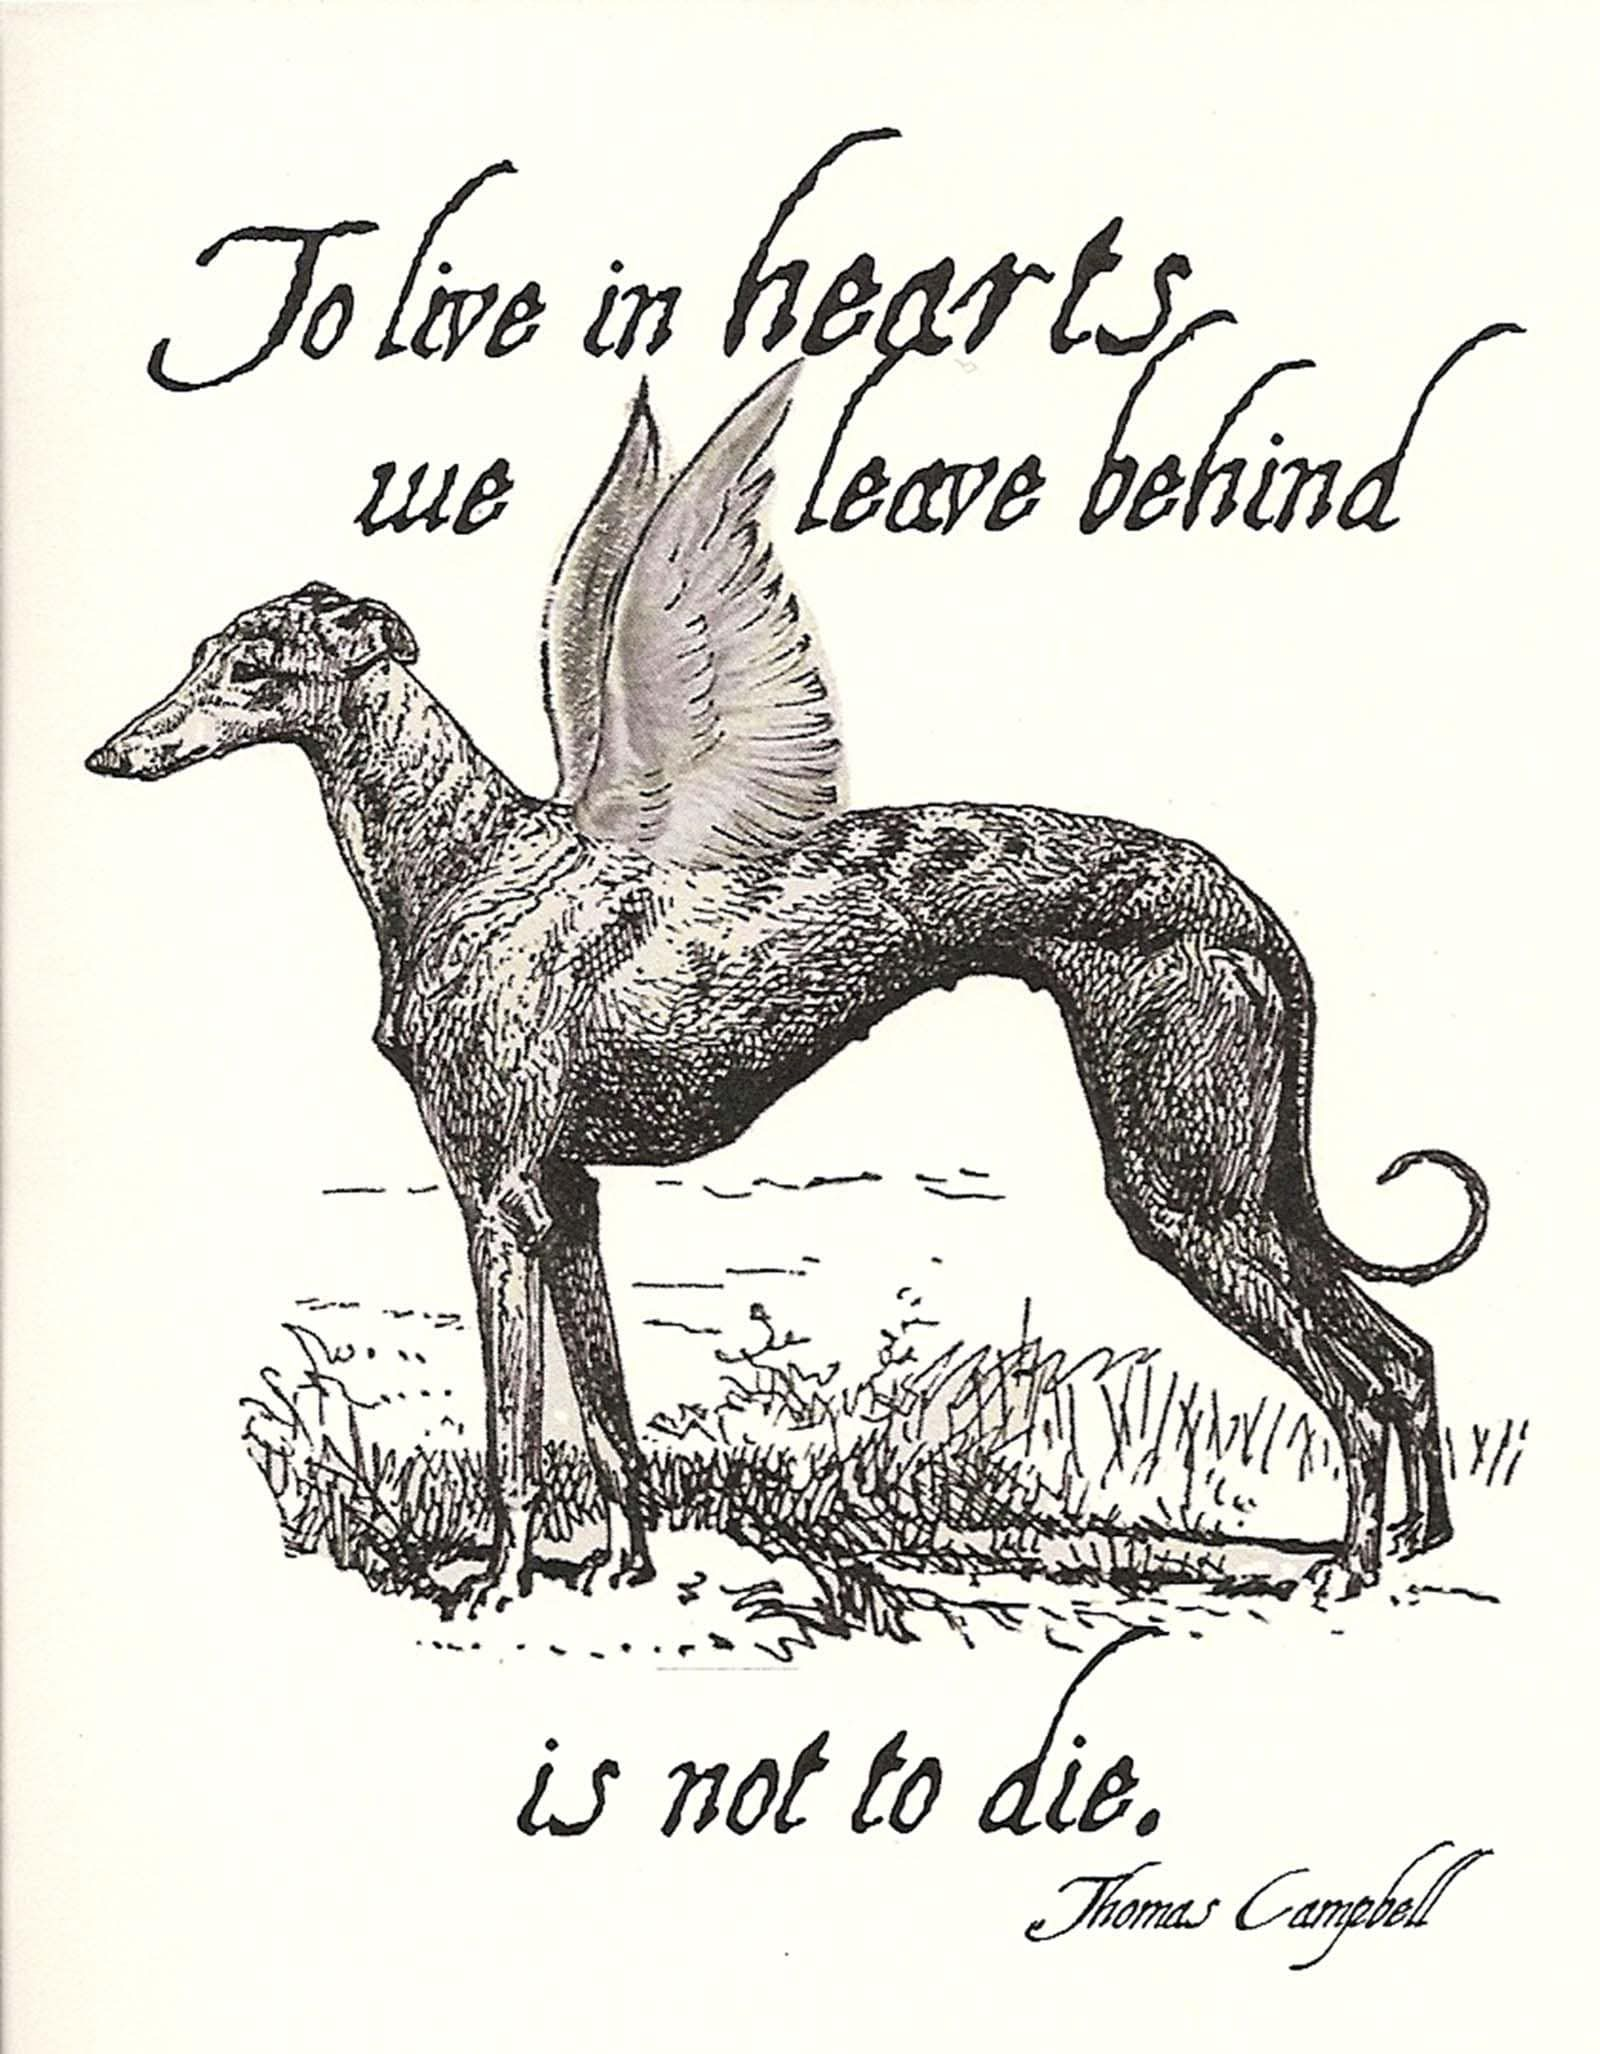 """GREYHOUND SYMPATHY CARD ASSORTMENT - one of each design, printed inside, with coordinating envelopes. Professionally printed, 5-1/2"""" x 4-1/4"""", set of 4. Trying to recover after the death of a pet is nearly impossible. These caring and heartfelt cards will express your feelings and extend comfort to those who are grieving. Also available in a set of eight cards. Part of all proceeds benefit Greyhound adoption. **()()()**$$$!!!&*"""